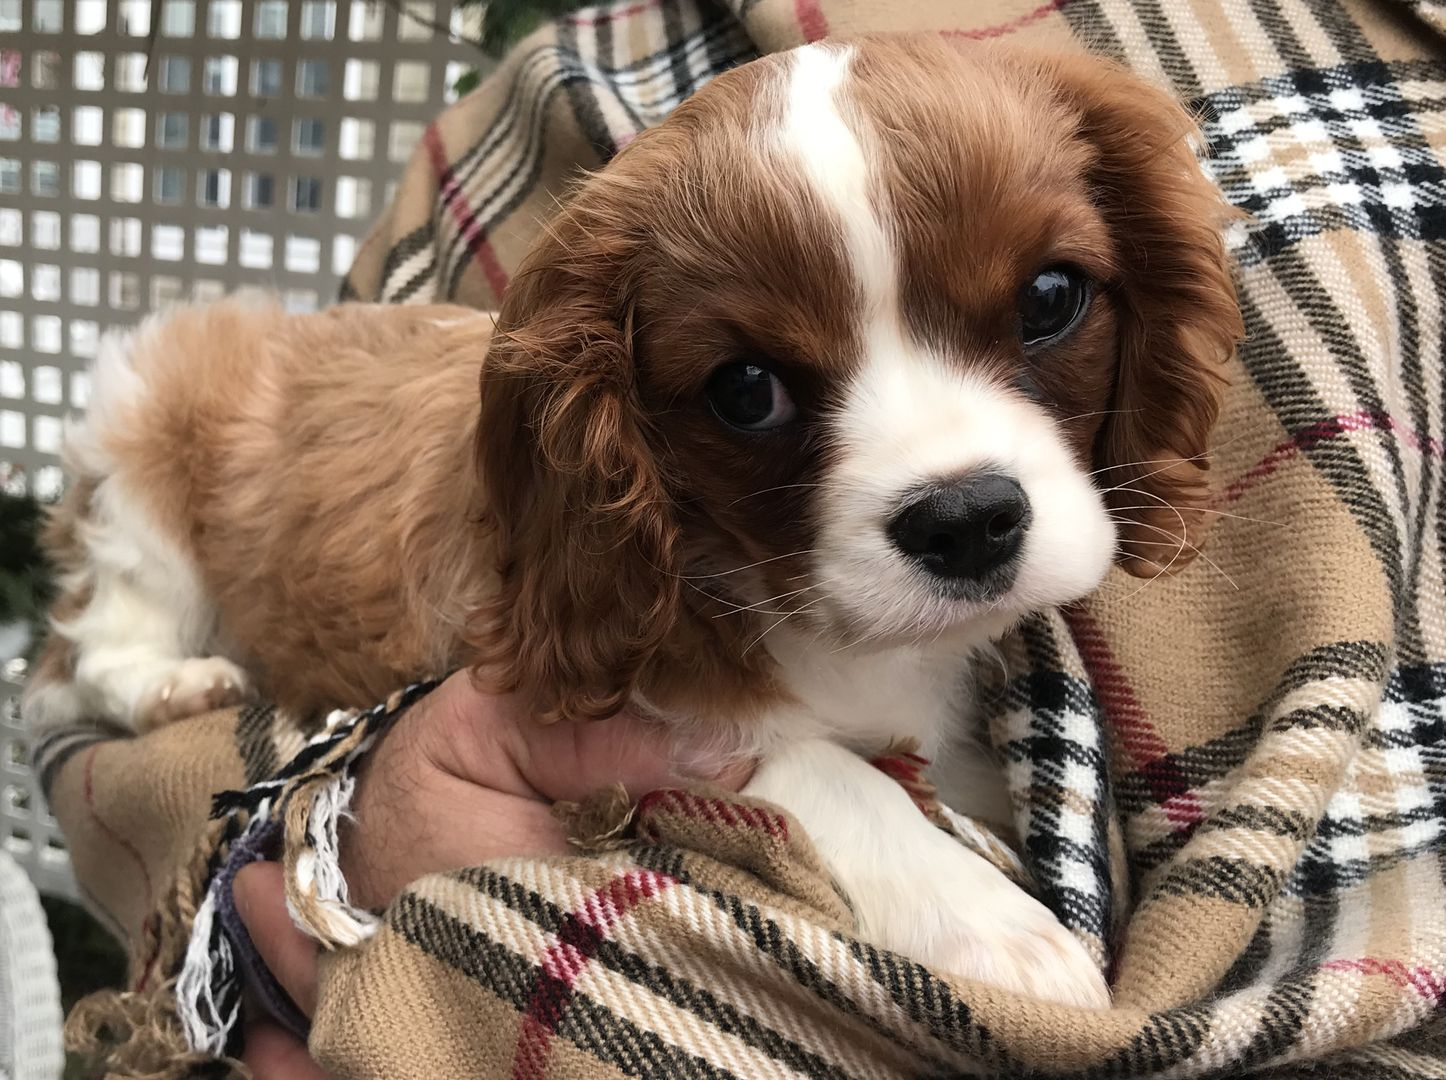 Cavalier King Charles Spaniel Puppies For Sale Sutton Ma Pictures Spaniel Puppies Spaniel Puppies For Sale King Charles Cavalier Spaniel Puppy